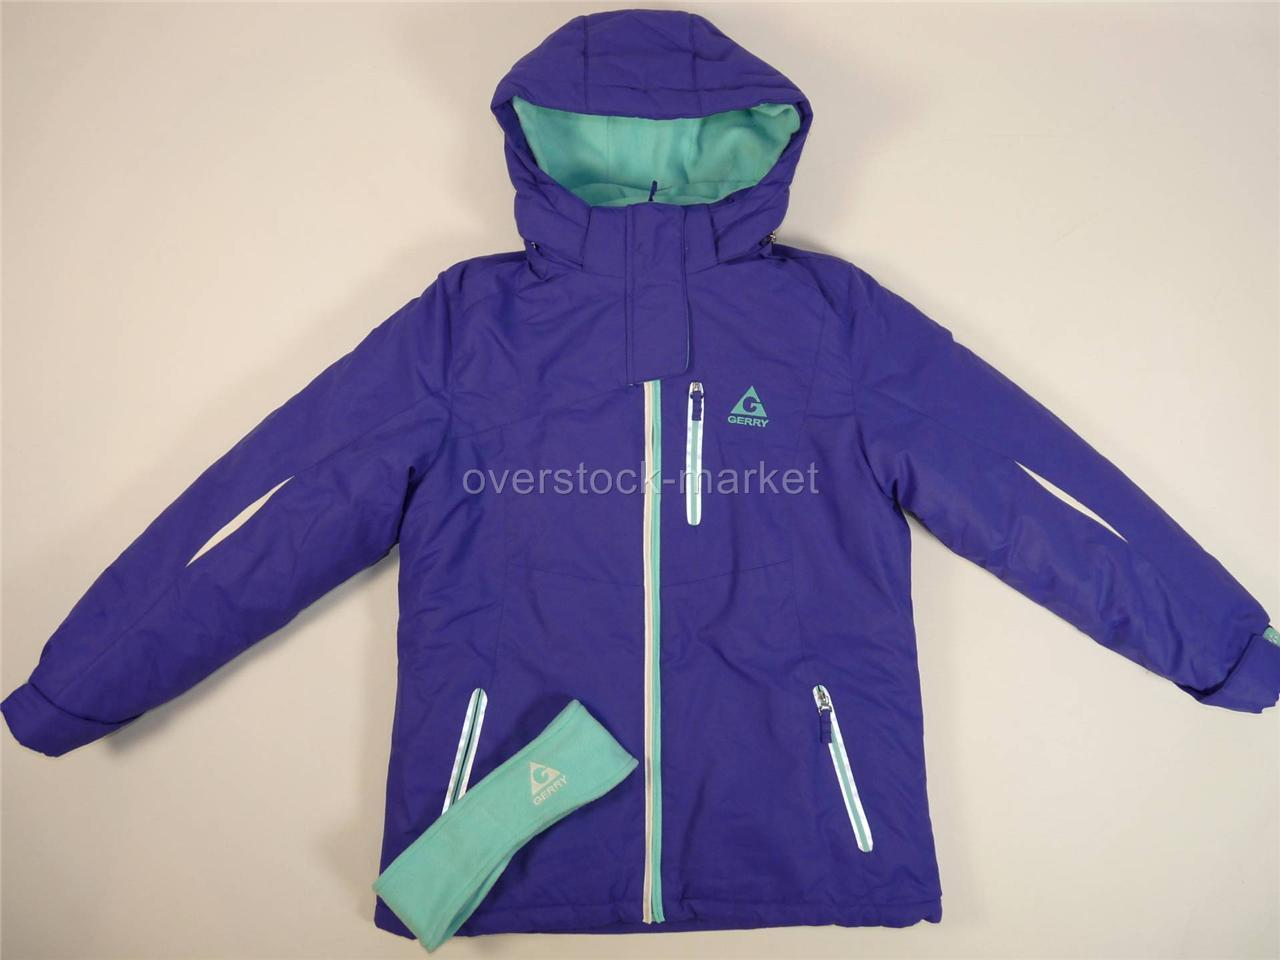 NEW GIRLS GERRY 3 IN 1 SYSTEMS JACKET! SKI PARKA COAT! WIND/WATER